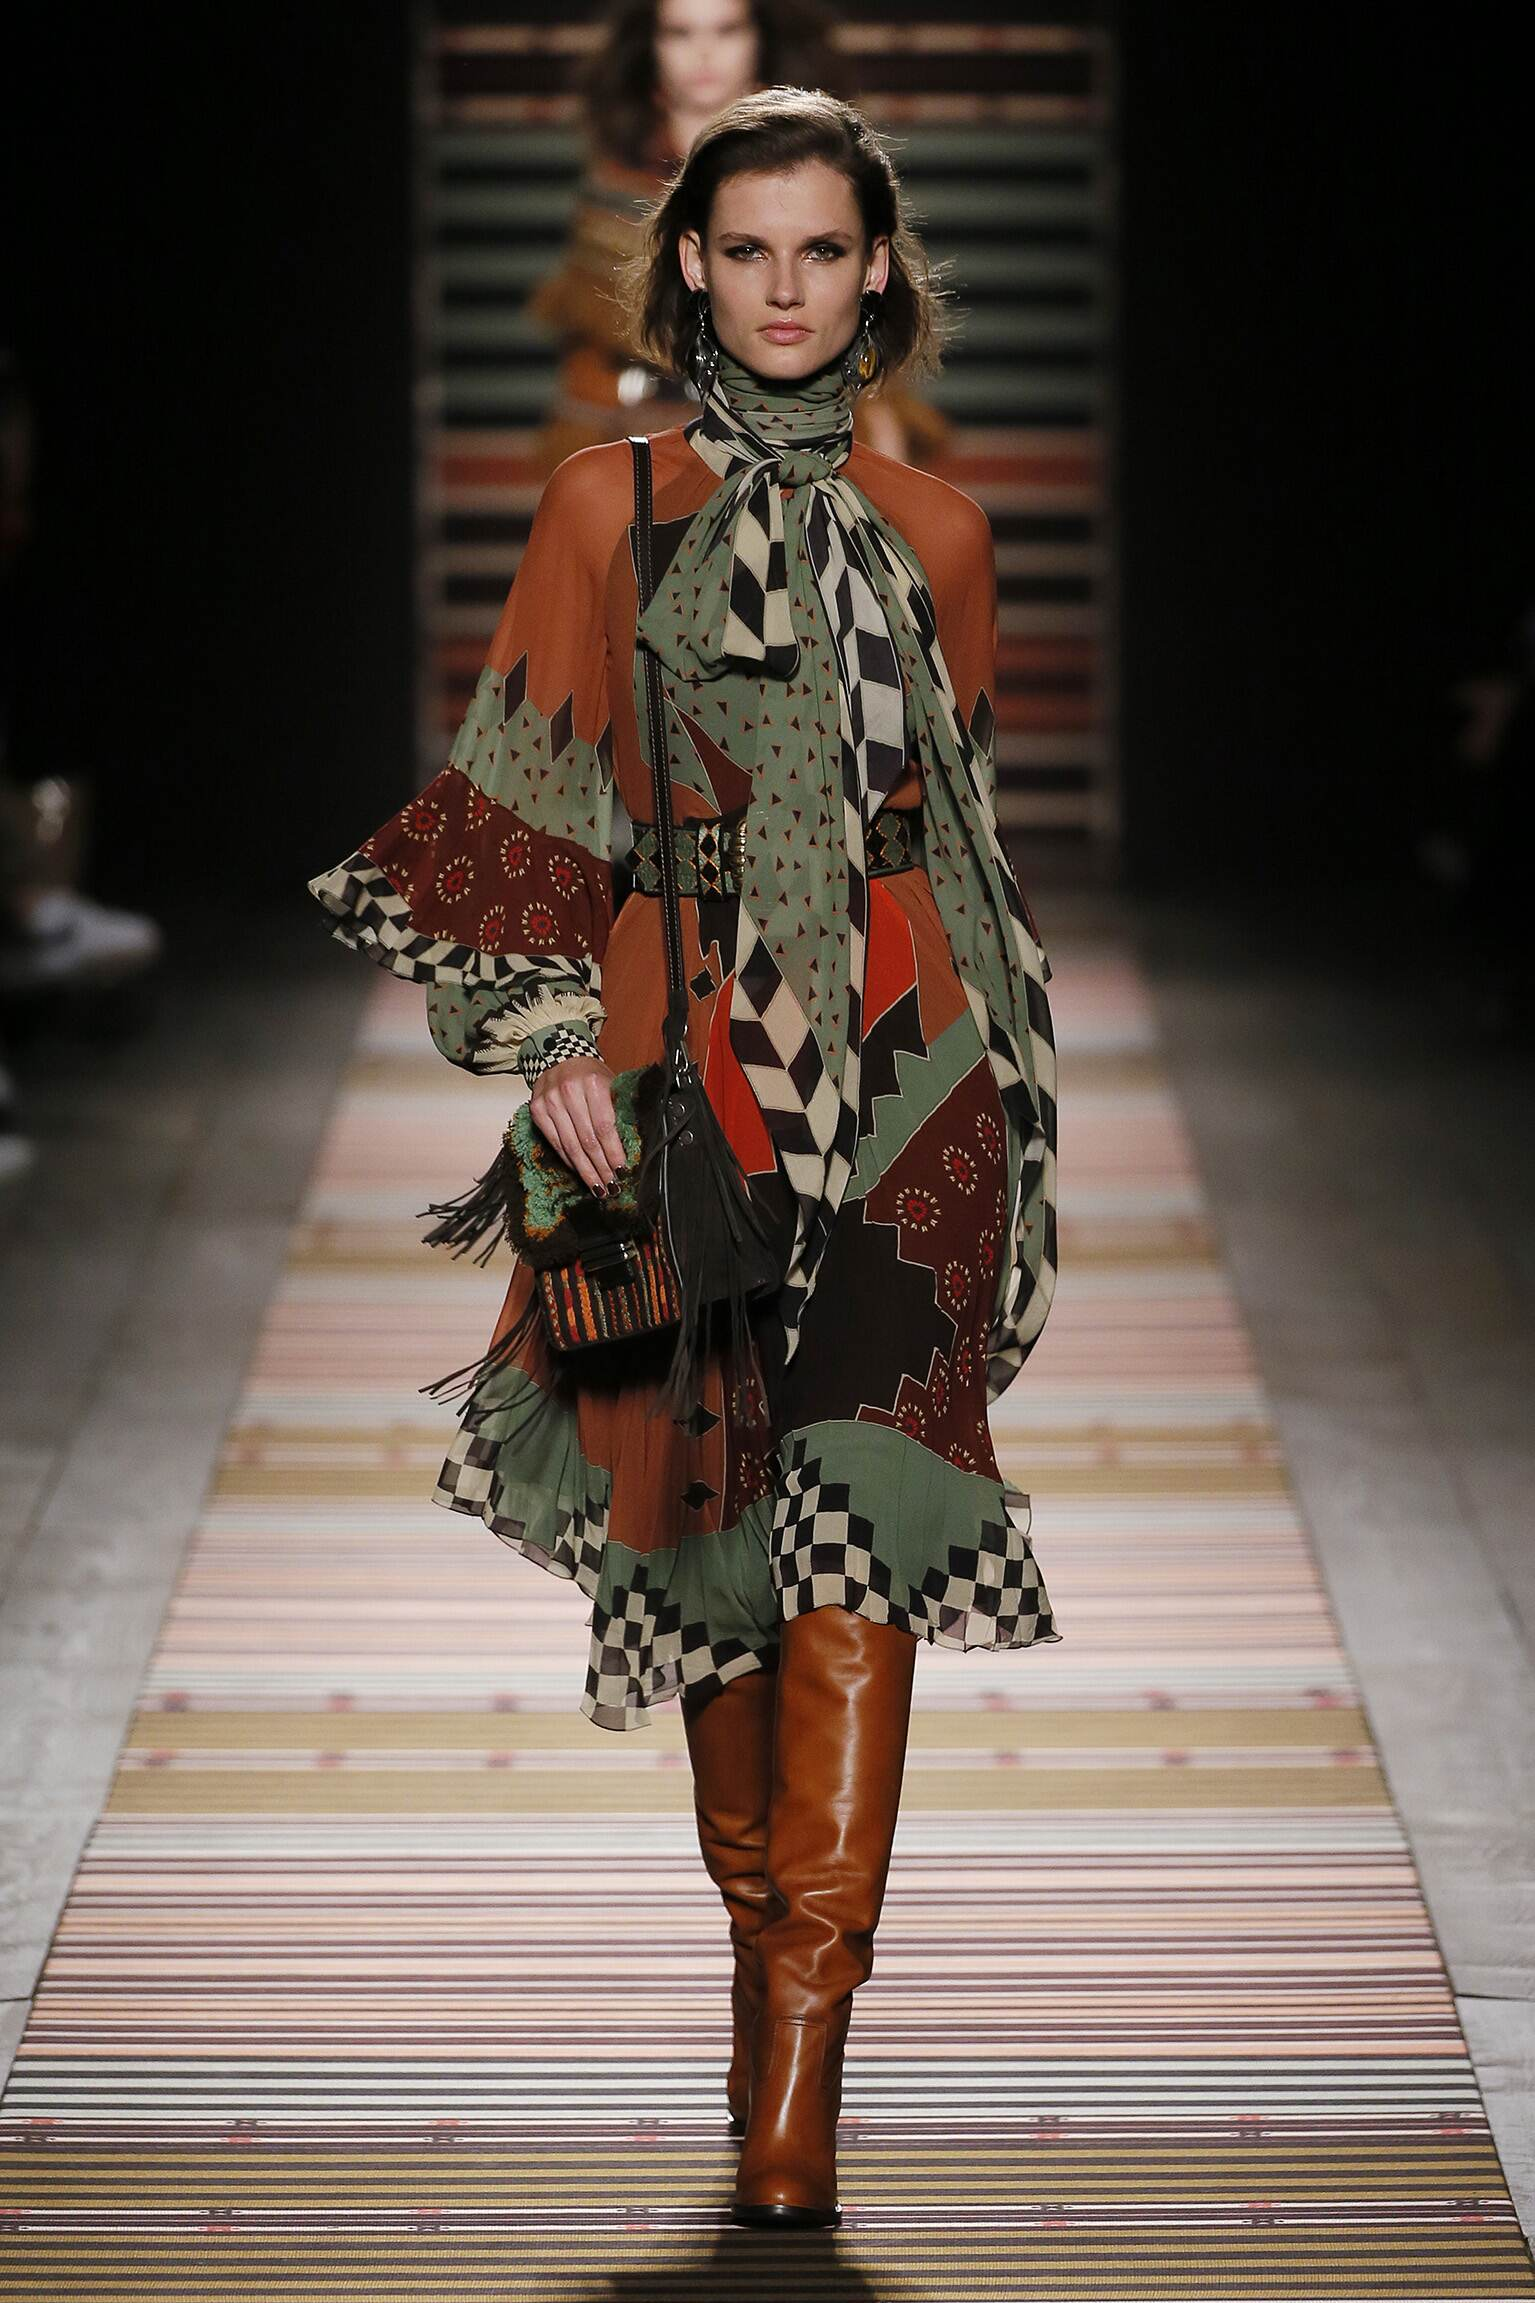 FW 2018-19 Etro Fashion Show